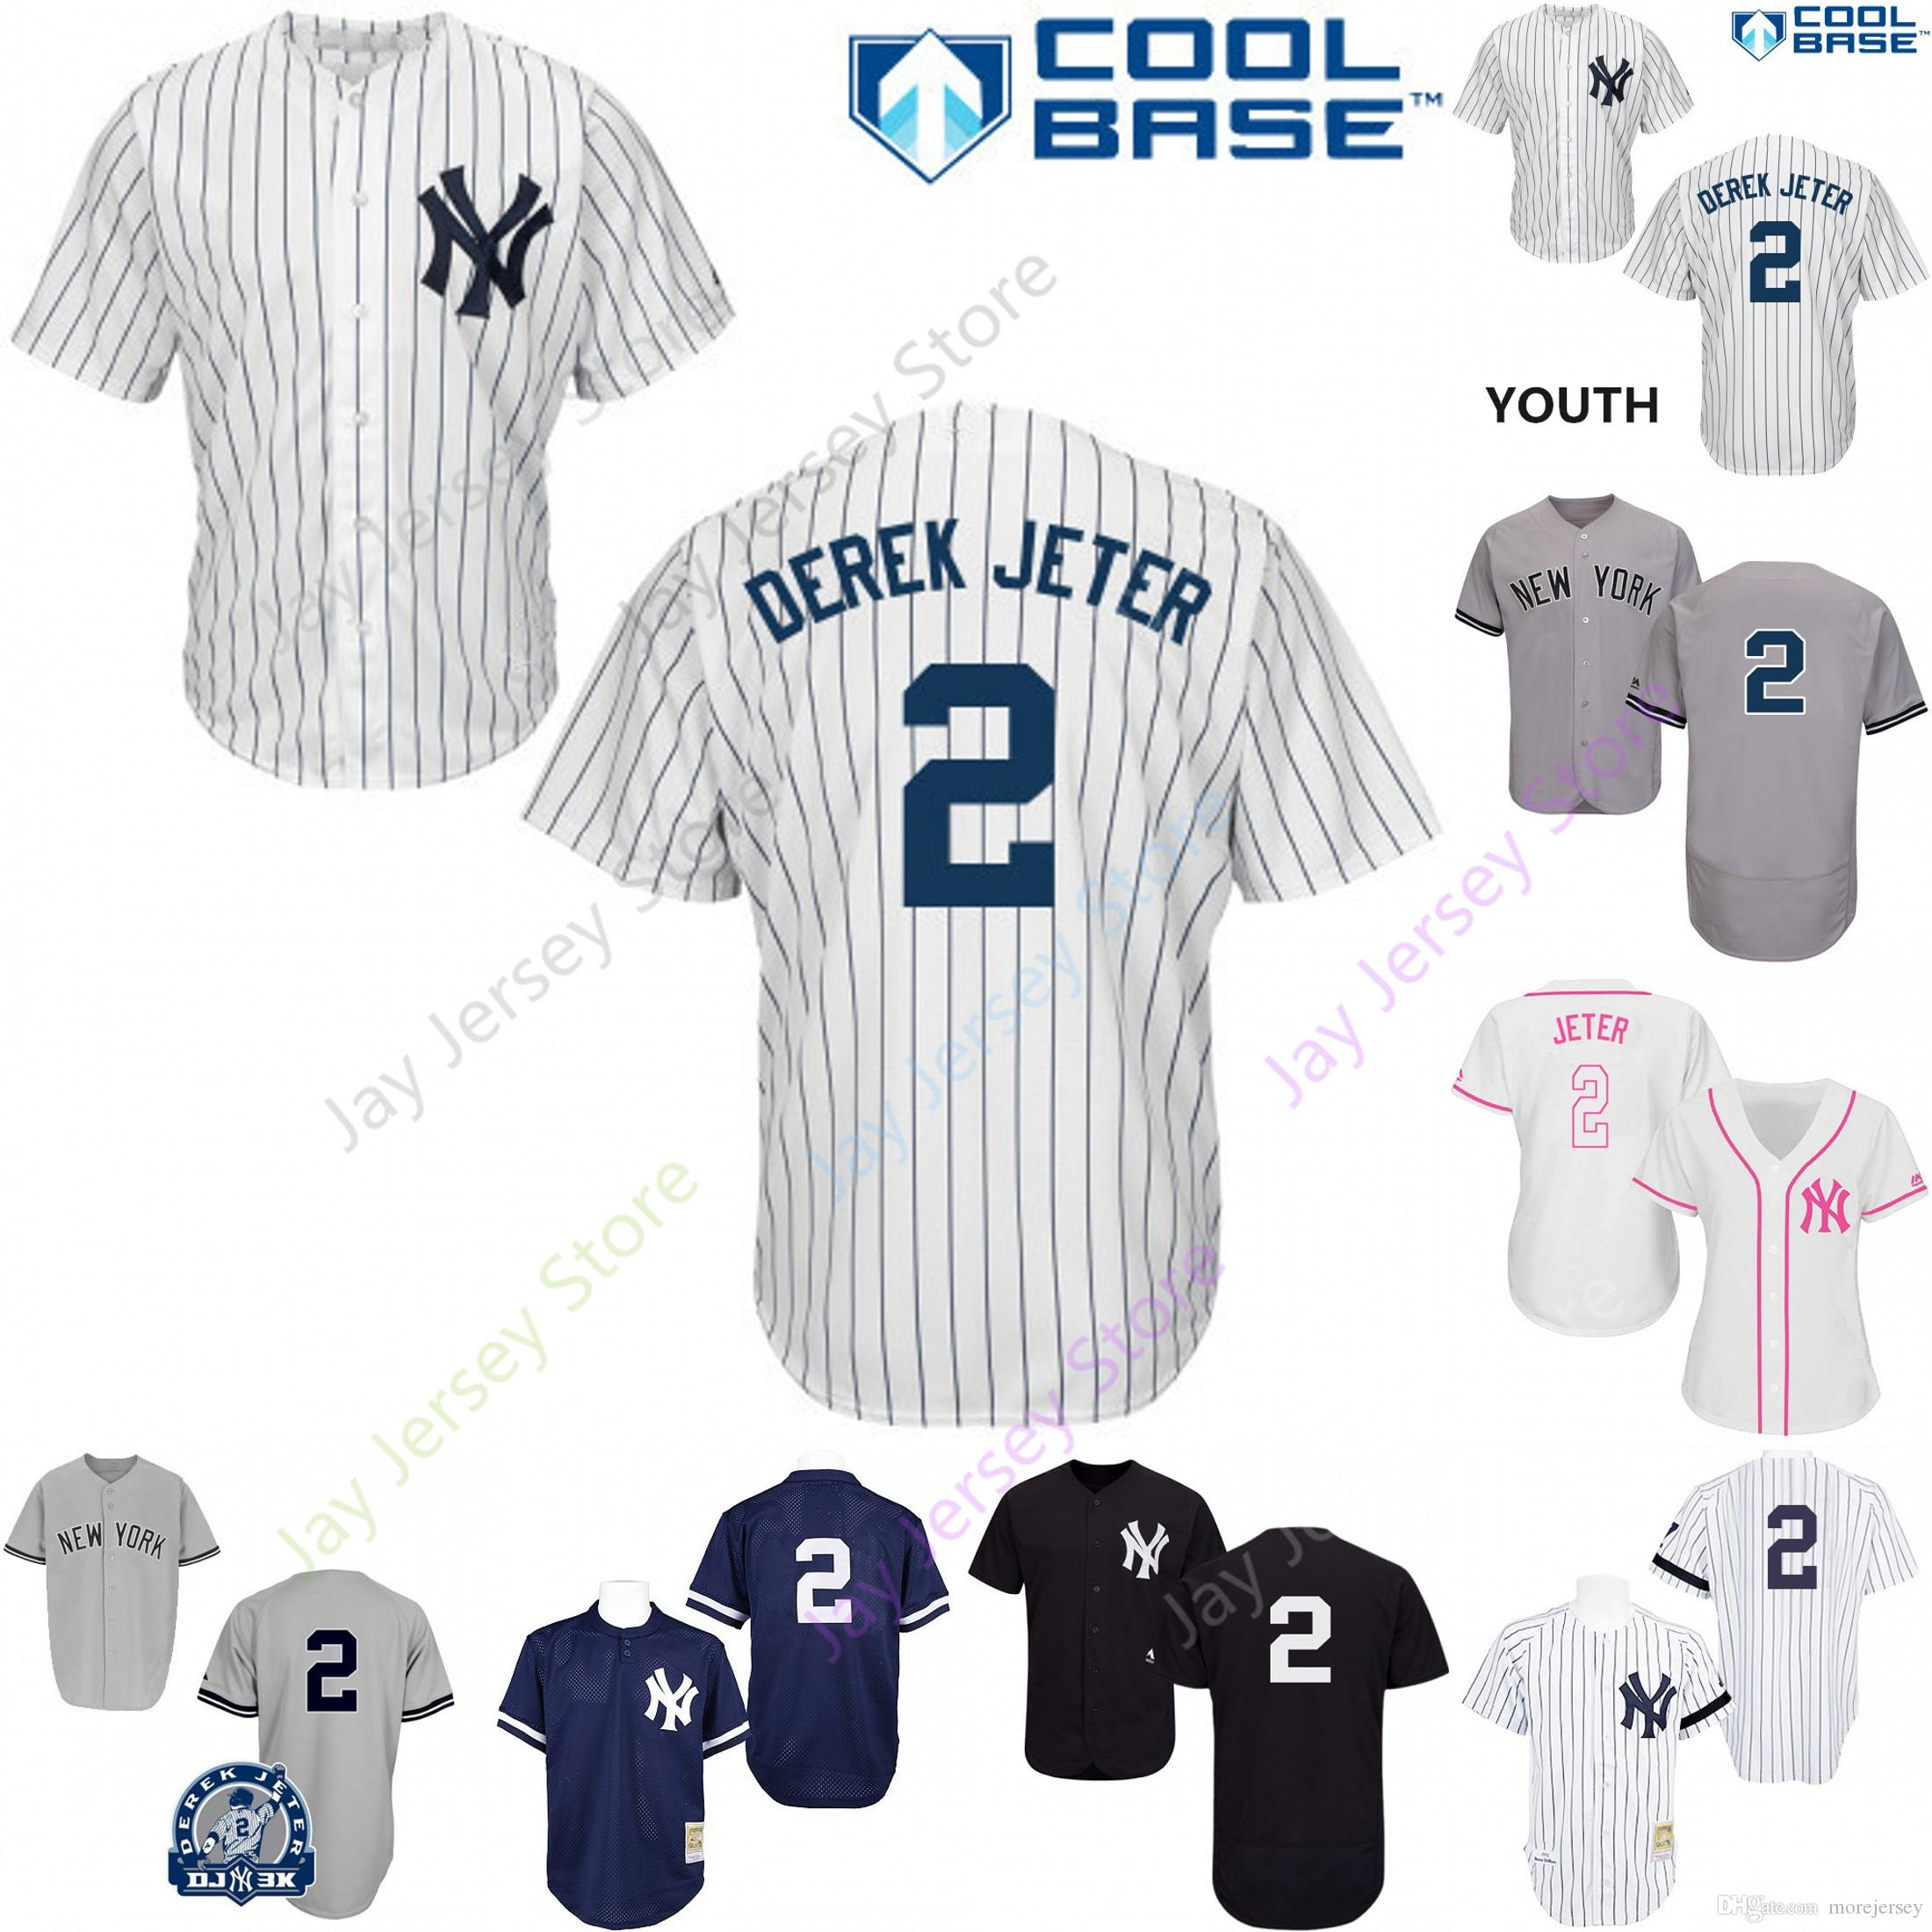 timeless design c4653 3d4ee 2019 New York 2 Derek Jeter Jersey Yankees Jerseys Cool Base Flexbase Home  Away White Black Red Grey Pullover Button Men Women Youth